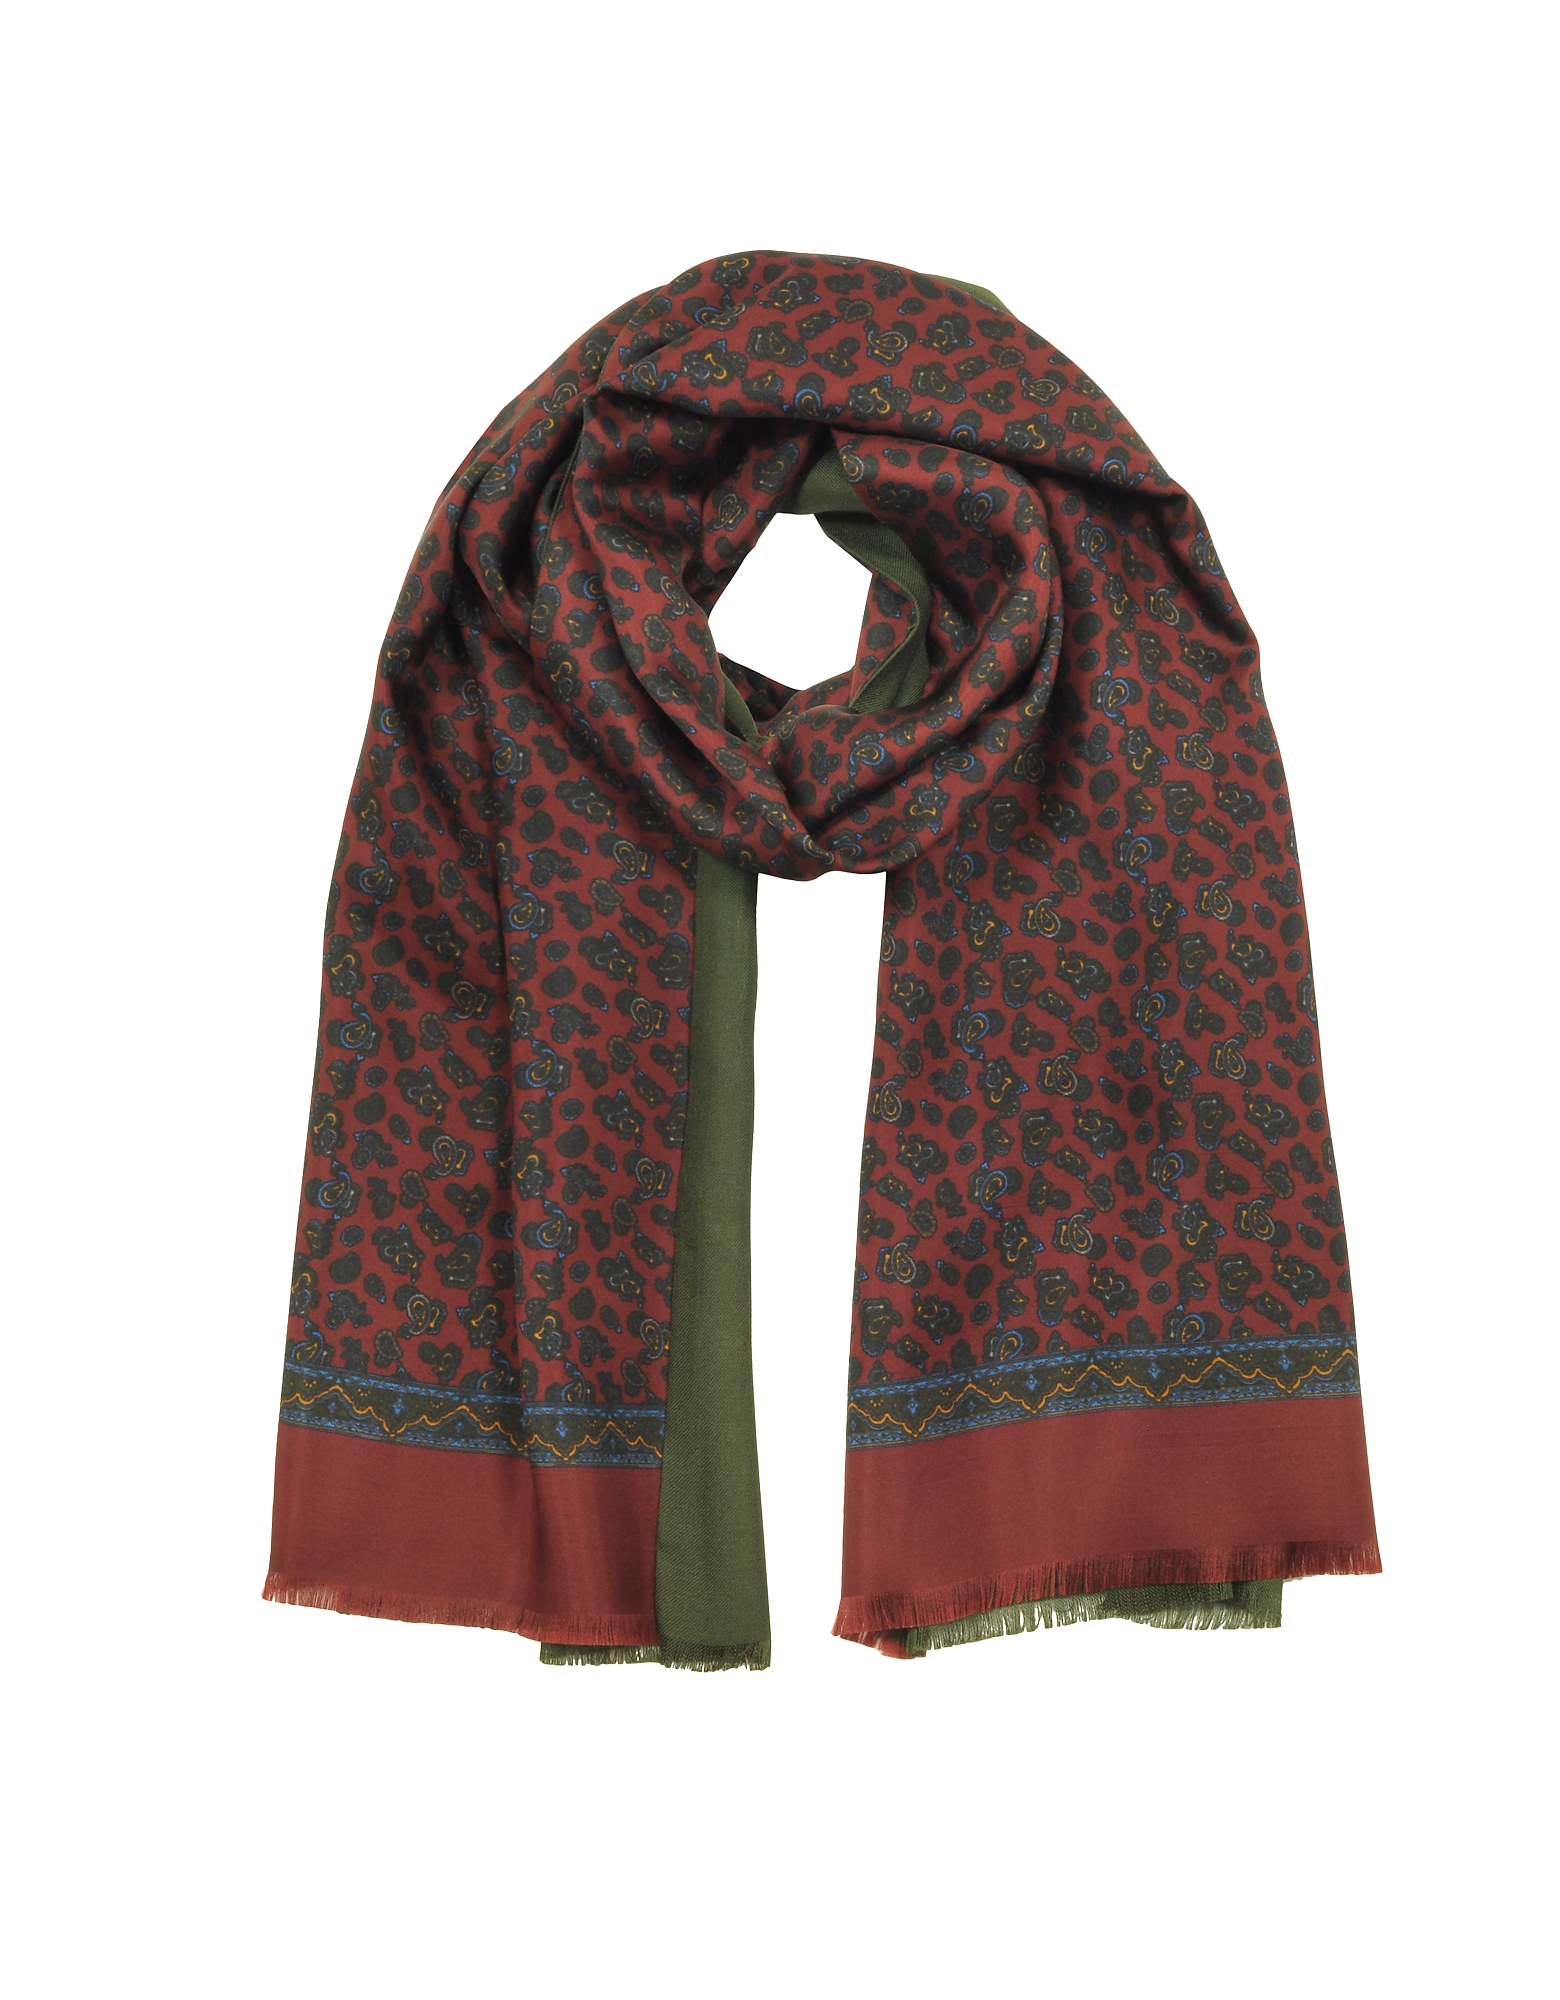 Modal & Silk Micro Paisley Print Men's Fringed Scarf